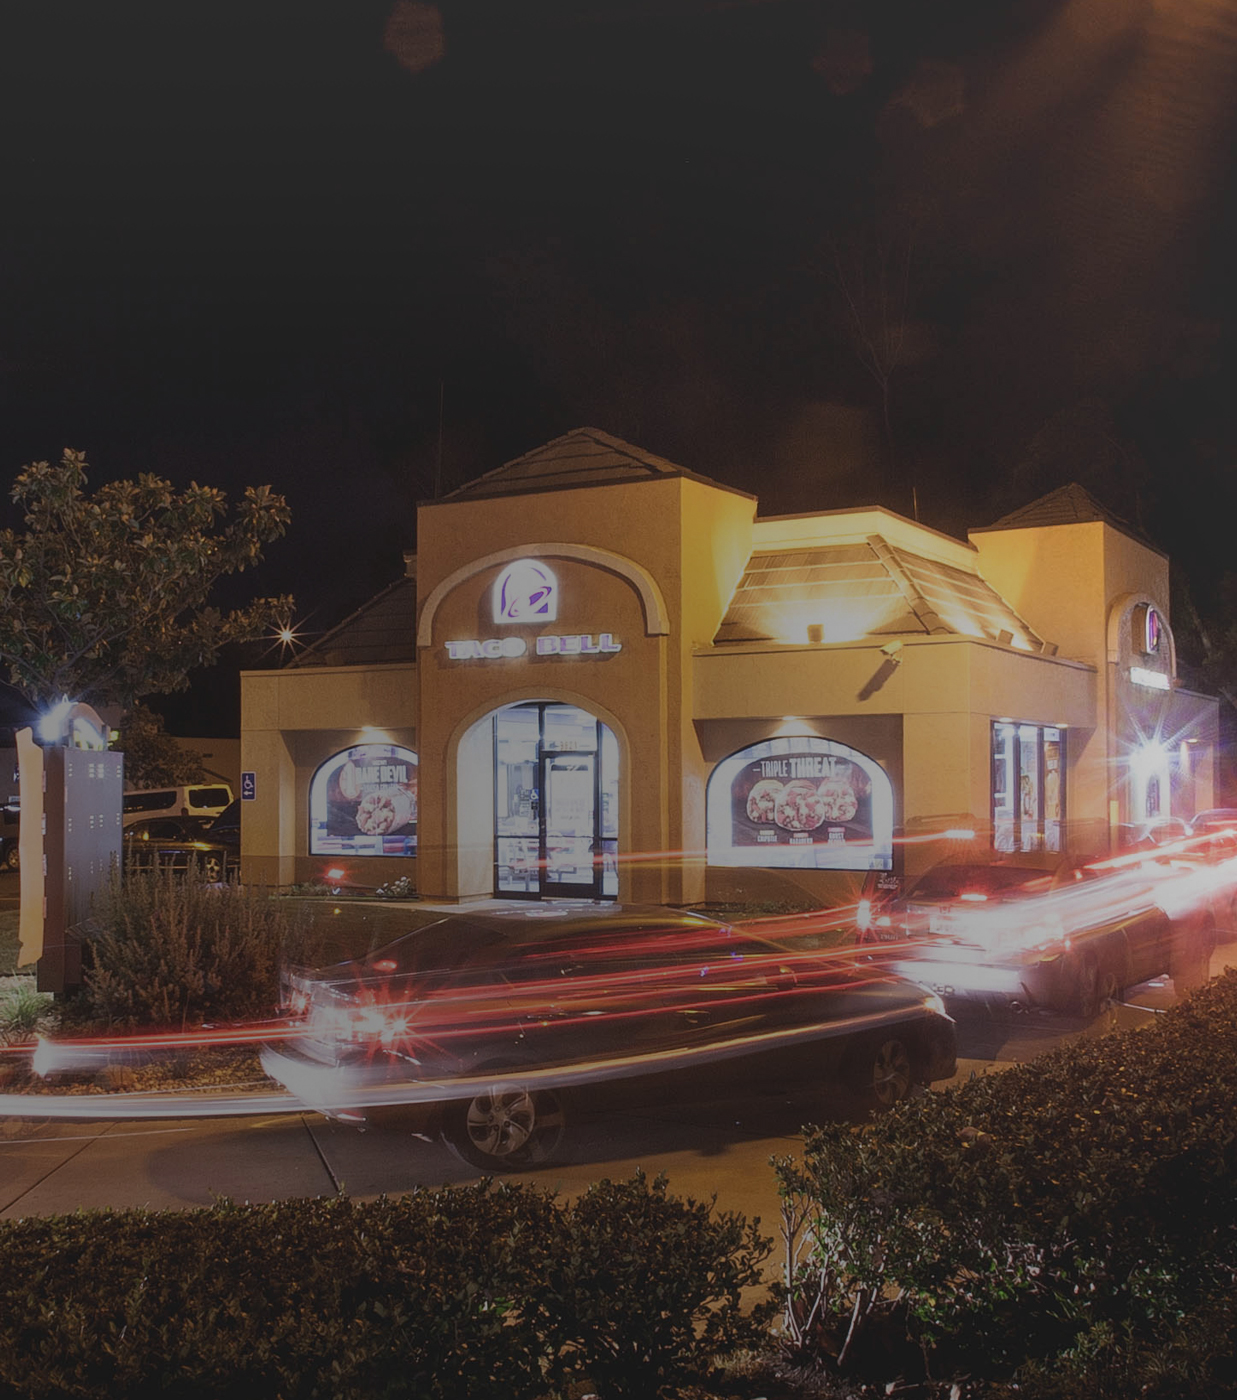 Taco Bell store image at night for the Live Mas campaign